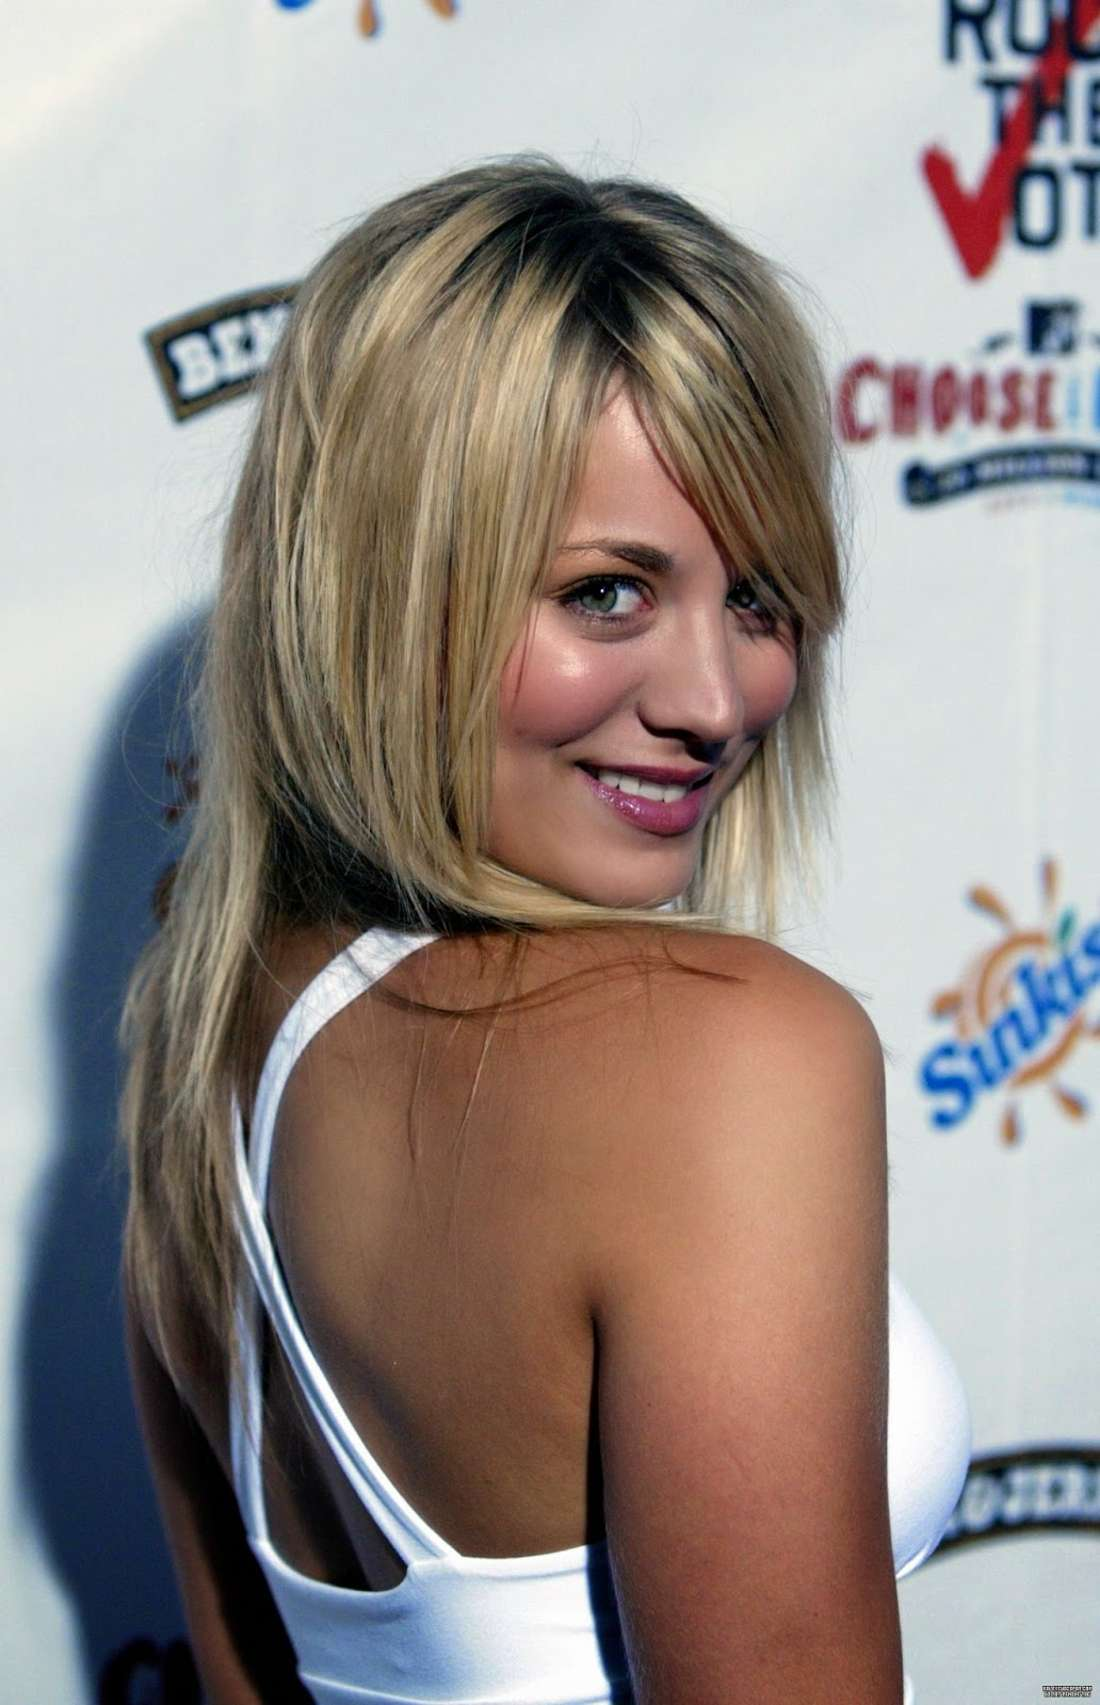 Kaley Cuoco 2016 : Kaley Cuoco: Rock The Vote National Bus Tour Concert 2004 -10